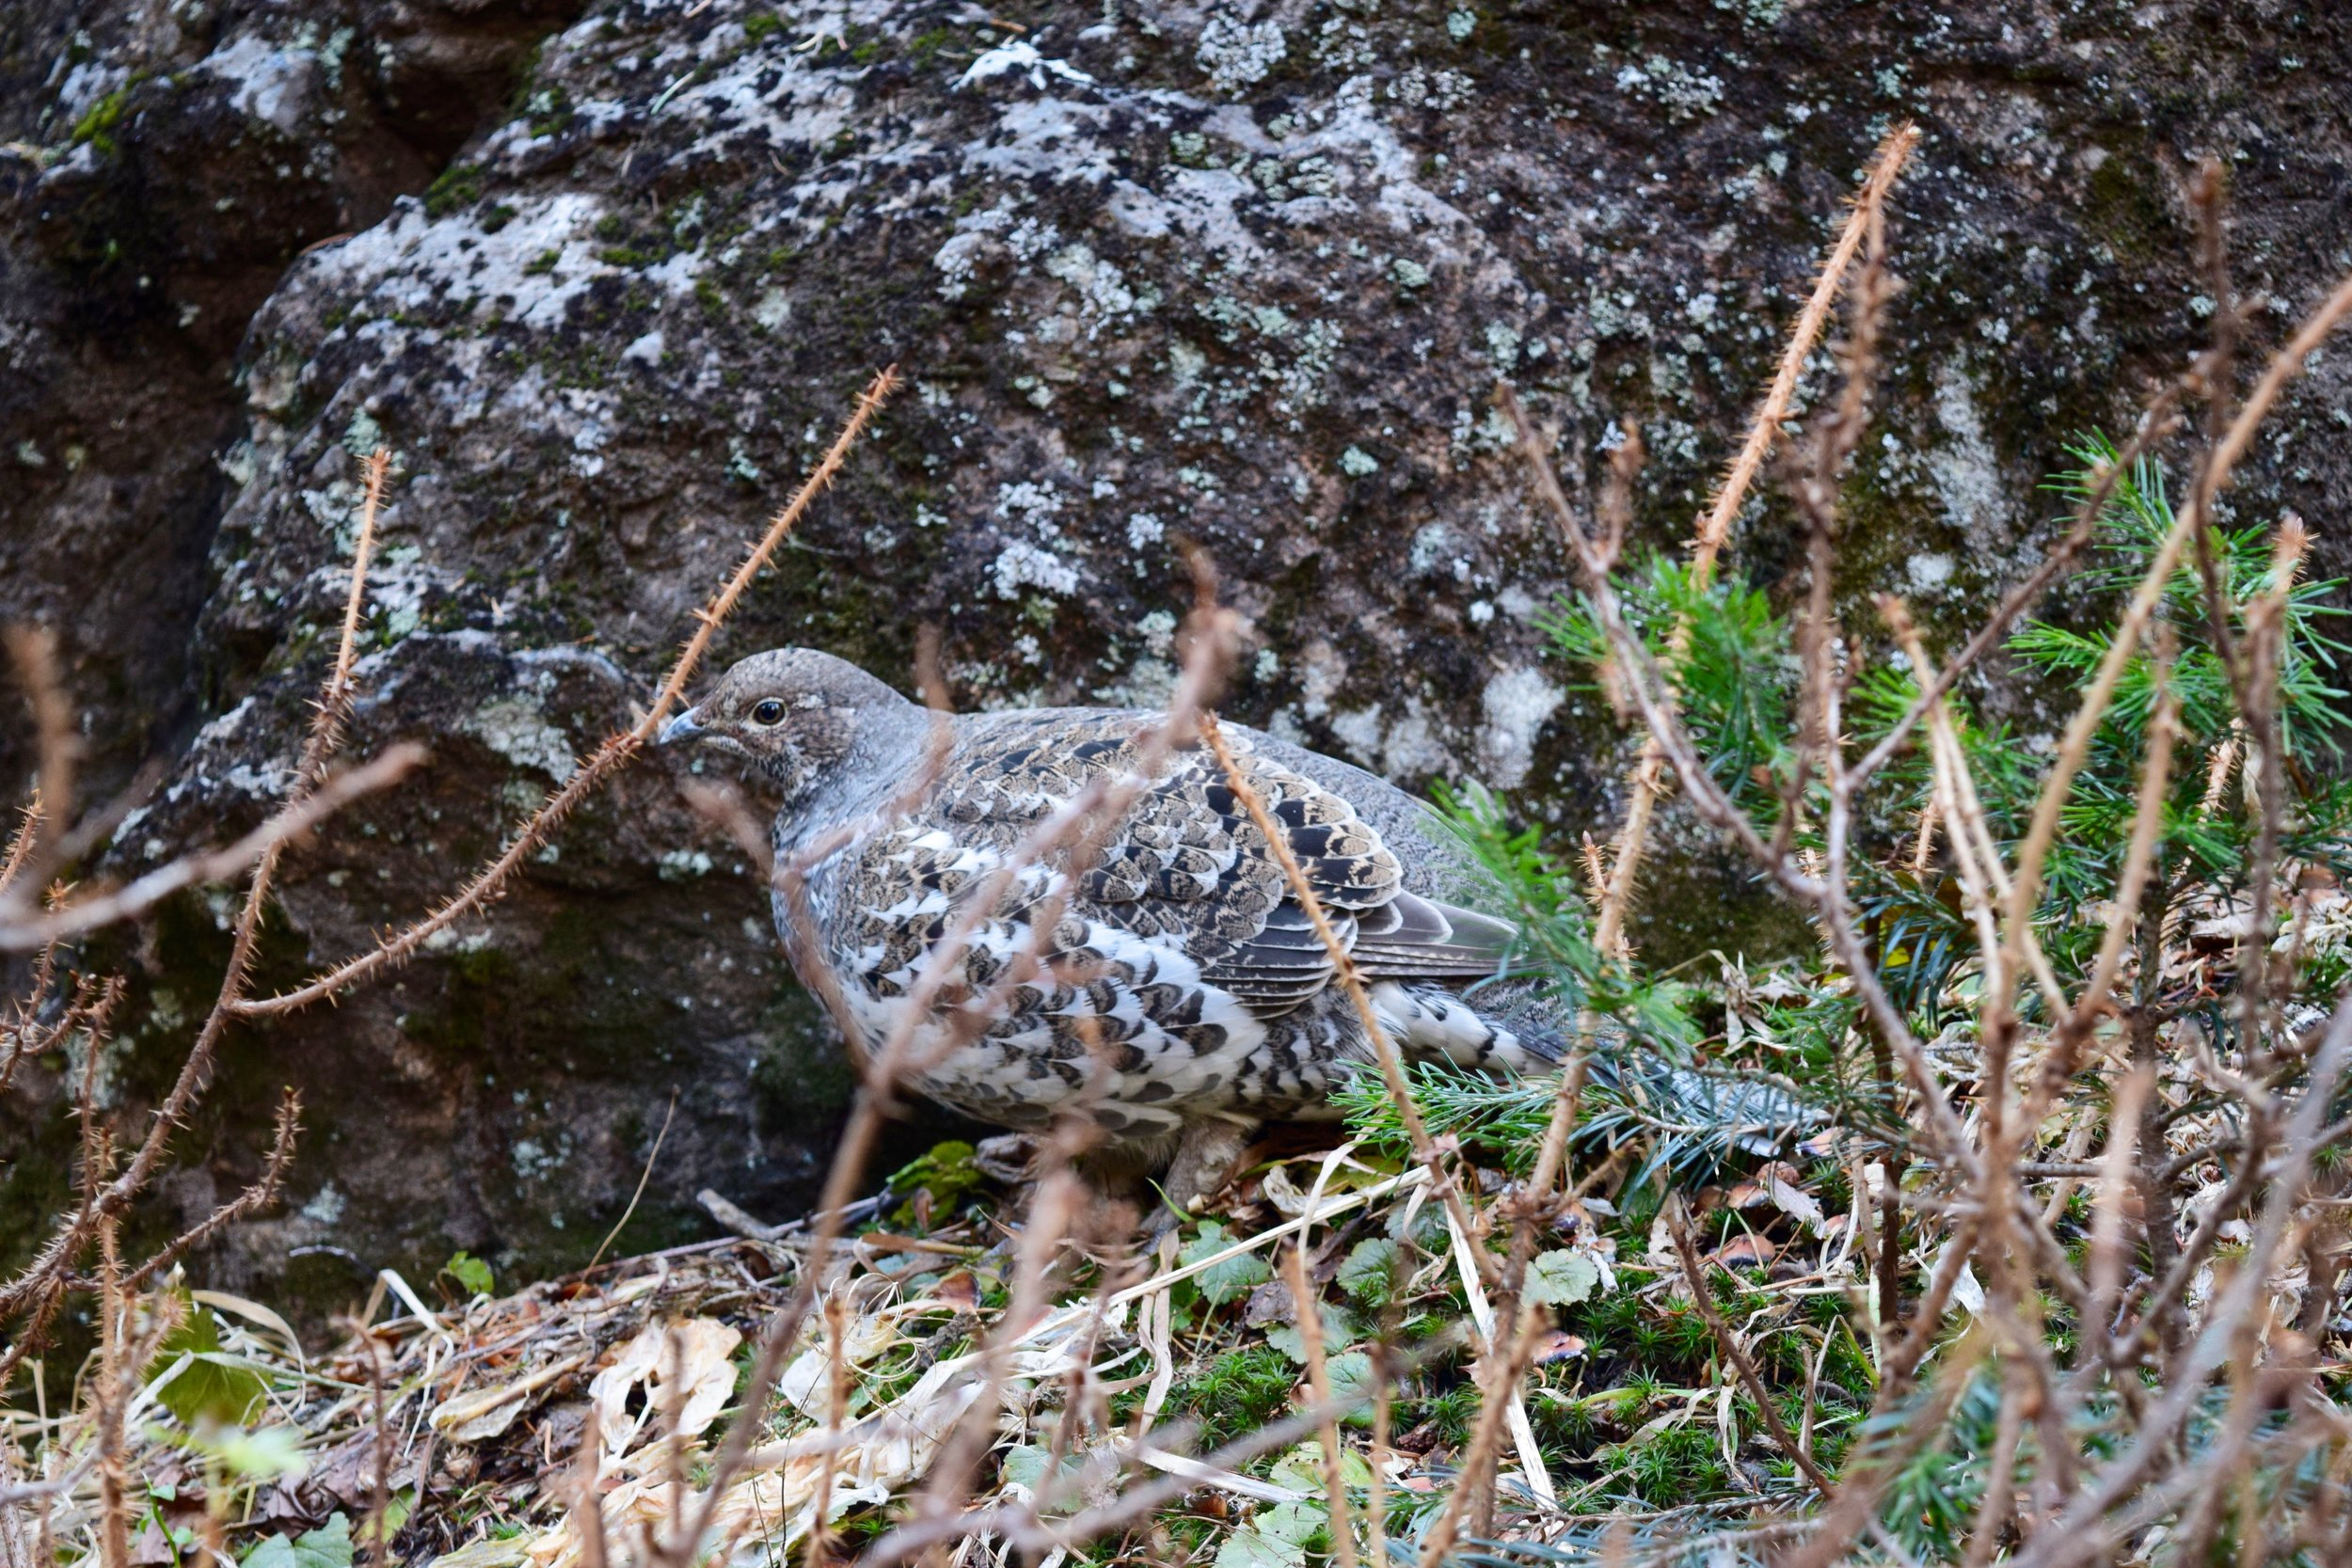 99% sure this is a ptarmigan - I'd never seen any before and there were three right off the trail!